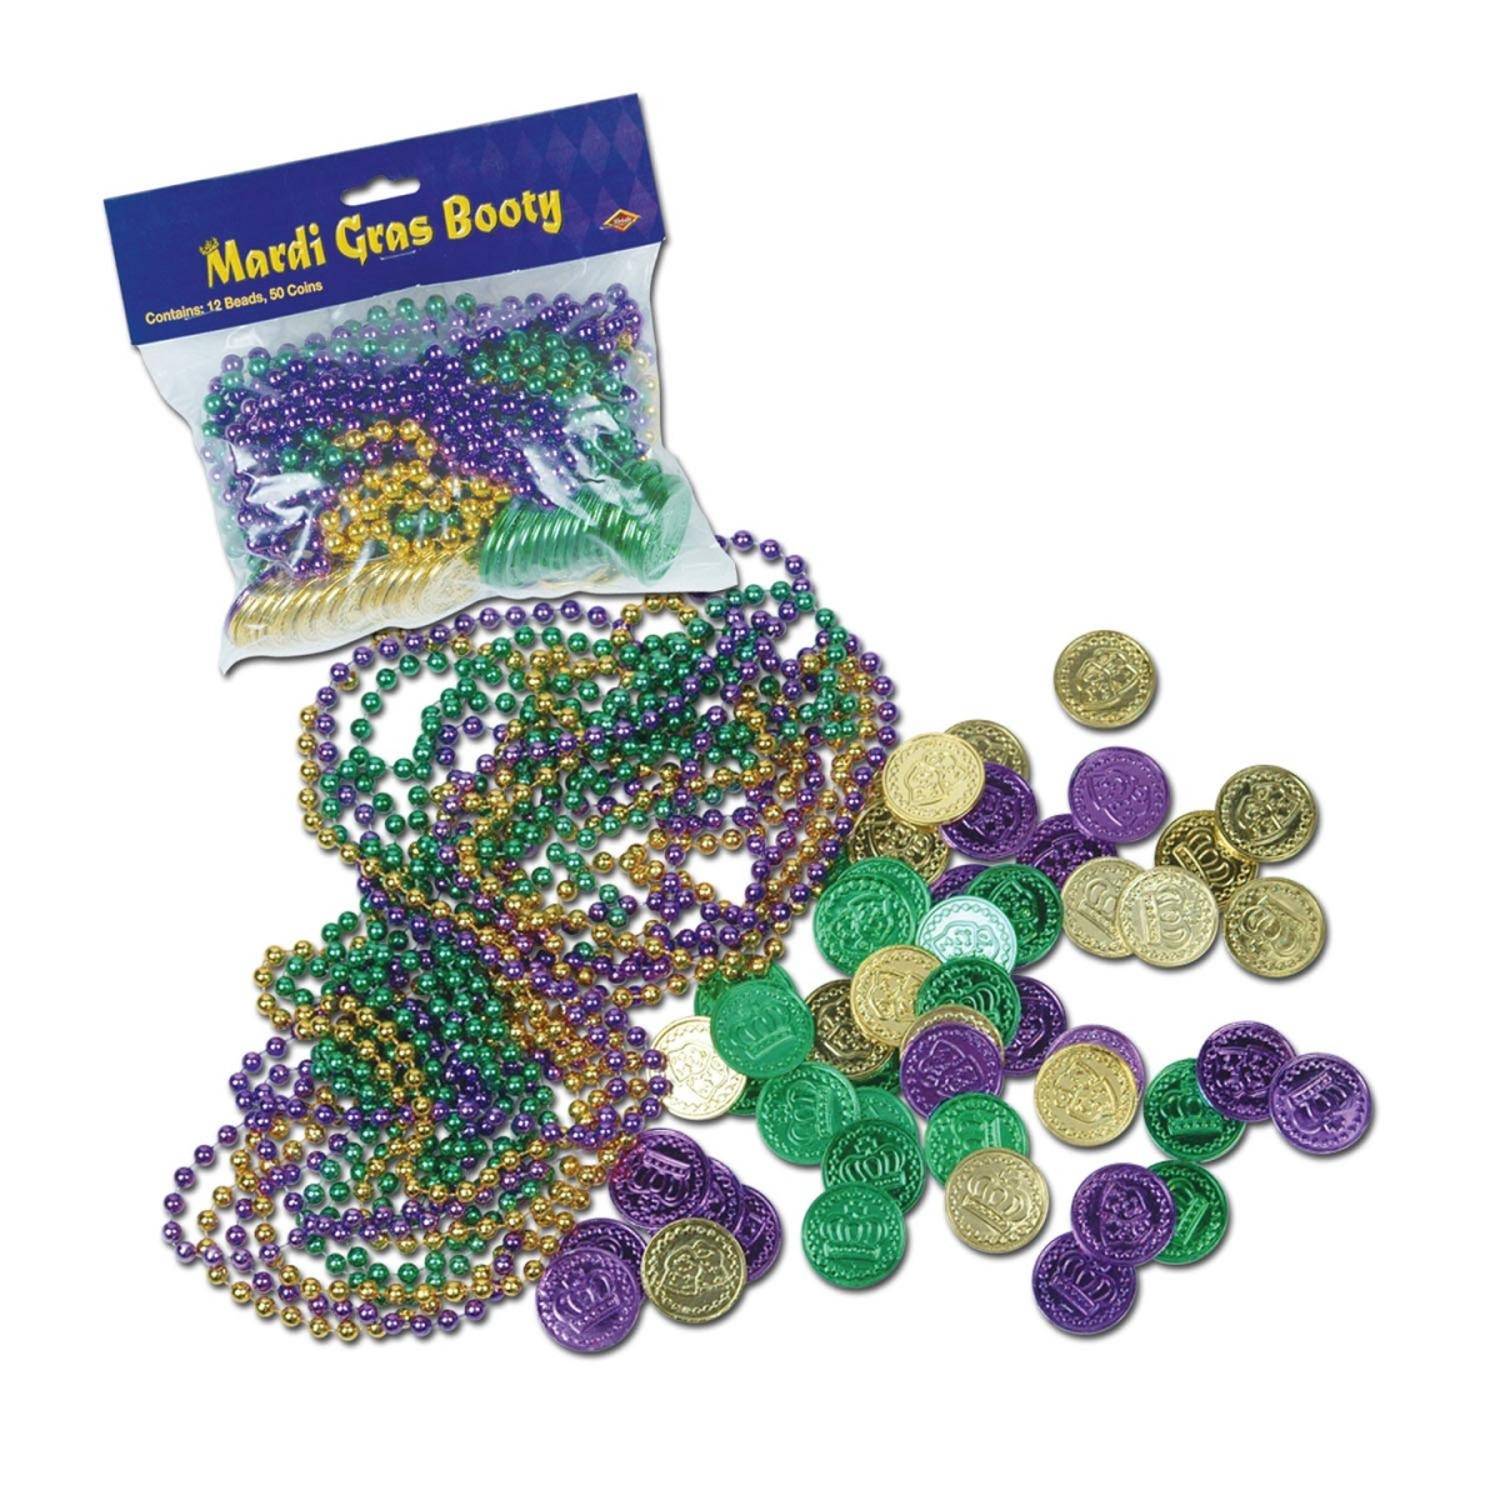 Club Pack of 744 Metallic Mardi Gras Bead Necklace and Coin Treasure Loot